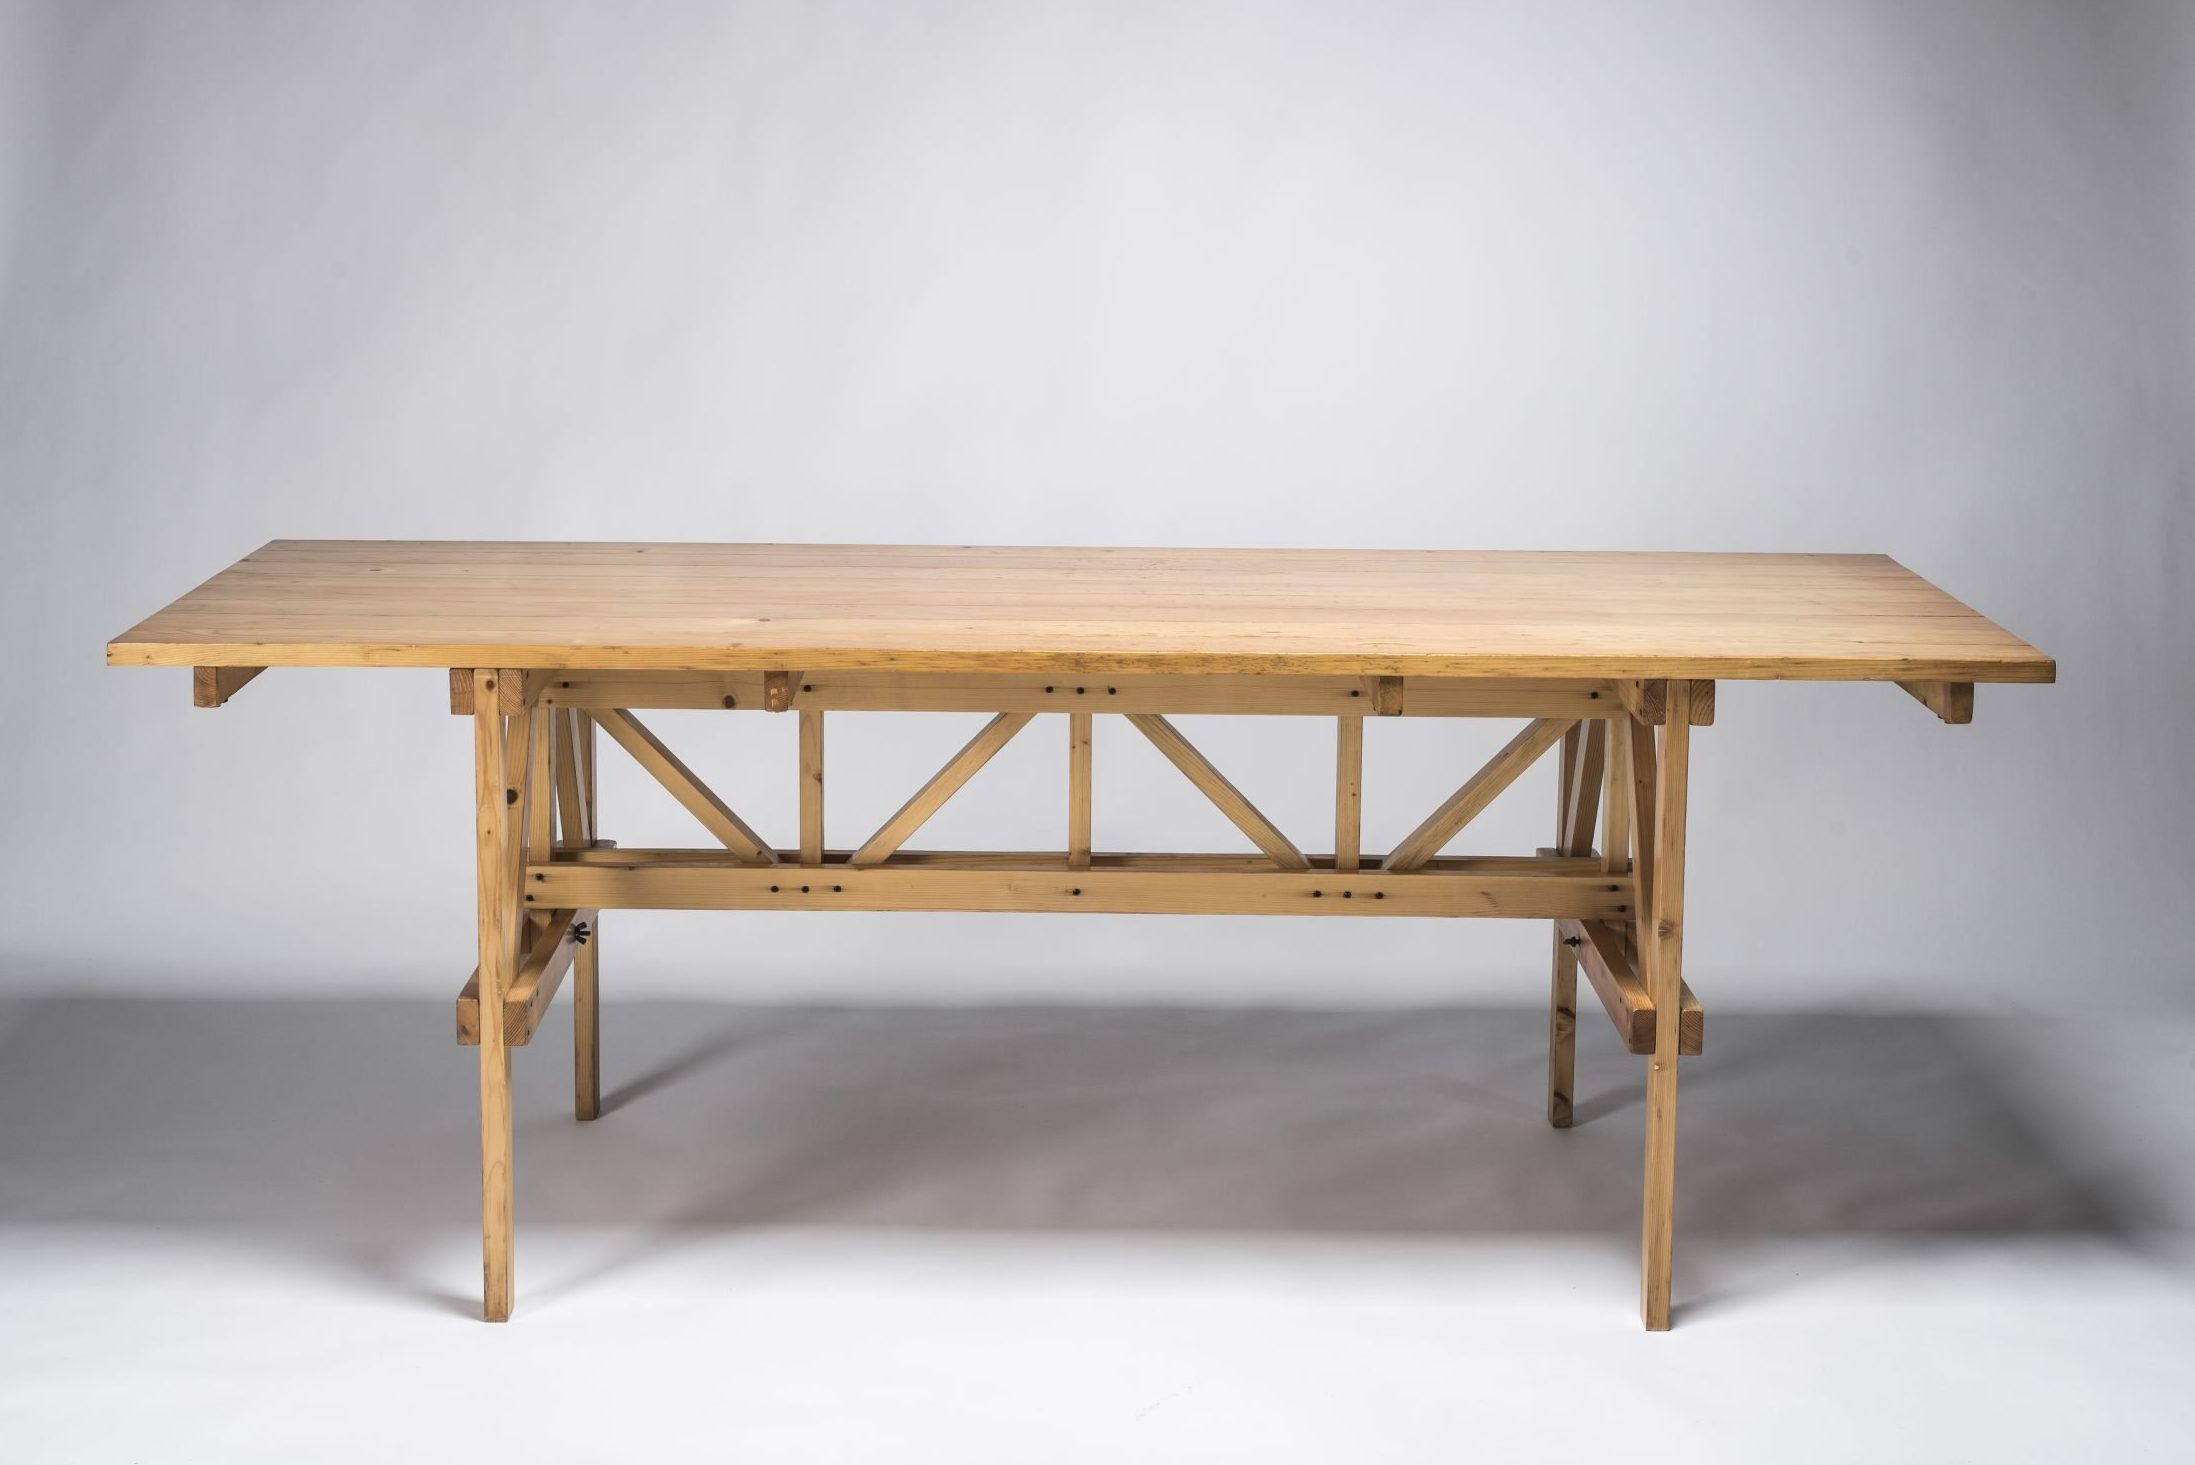 Autoprogettazione table by Enzo Mari at design and furniture gallery Casati Gallery